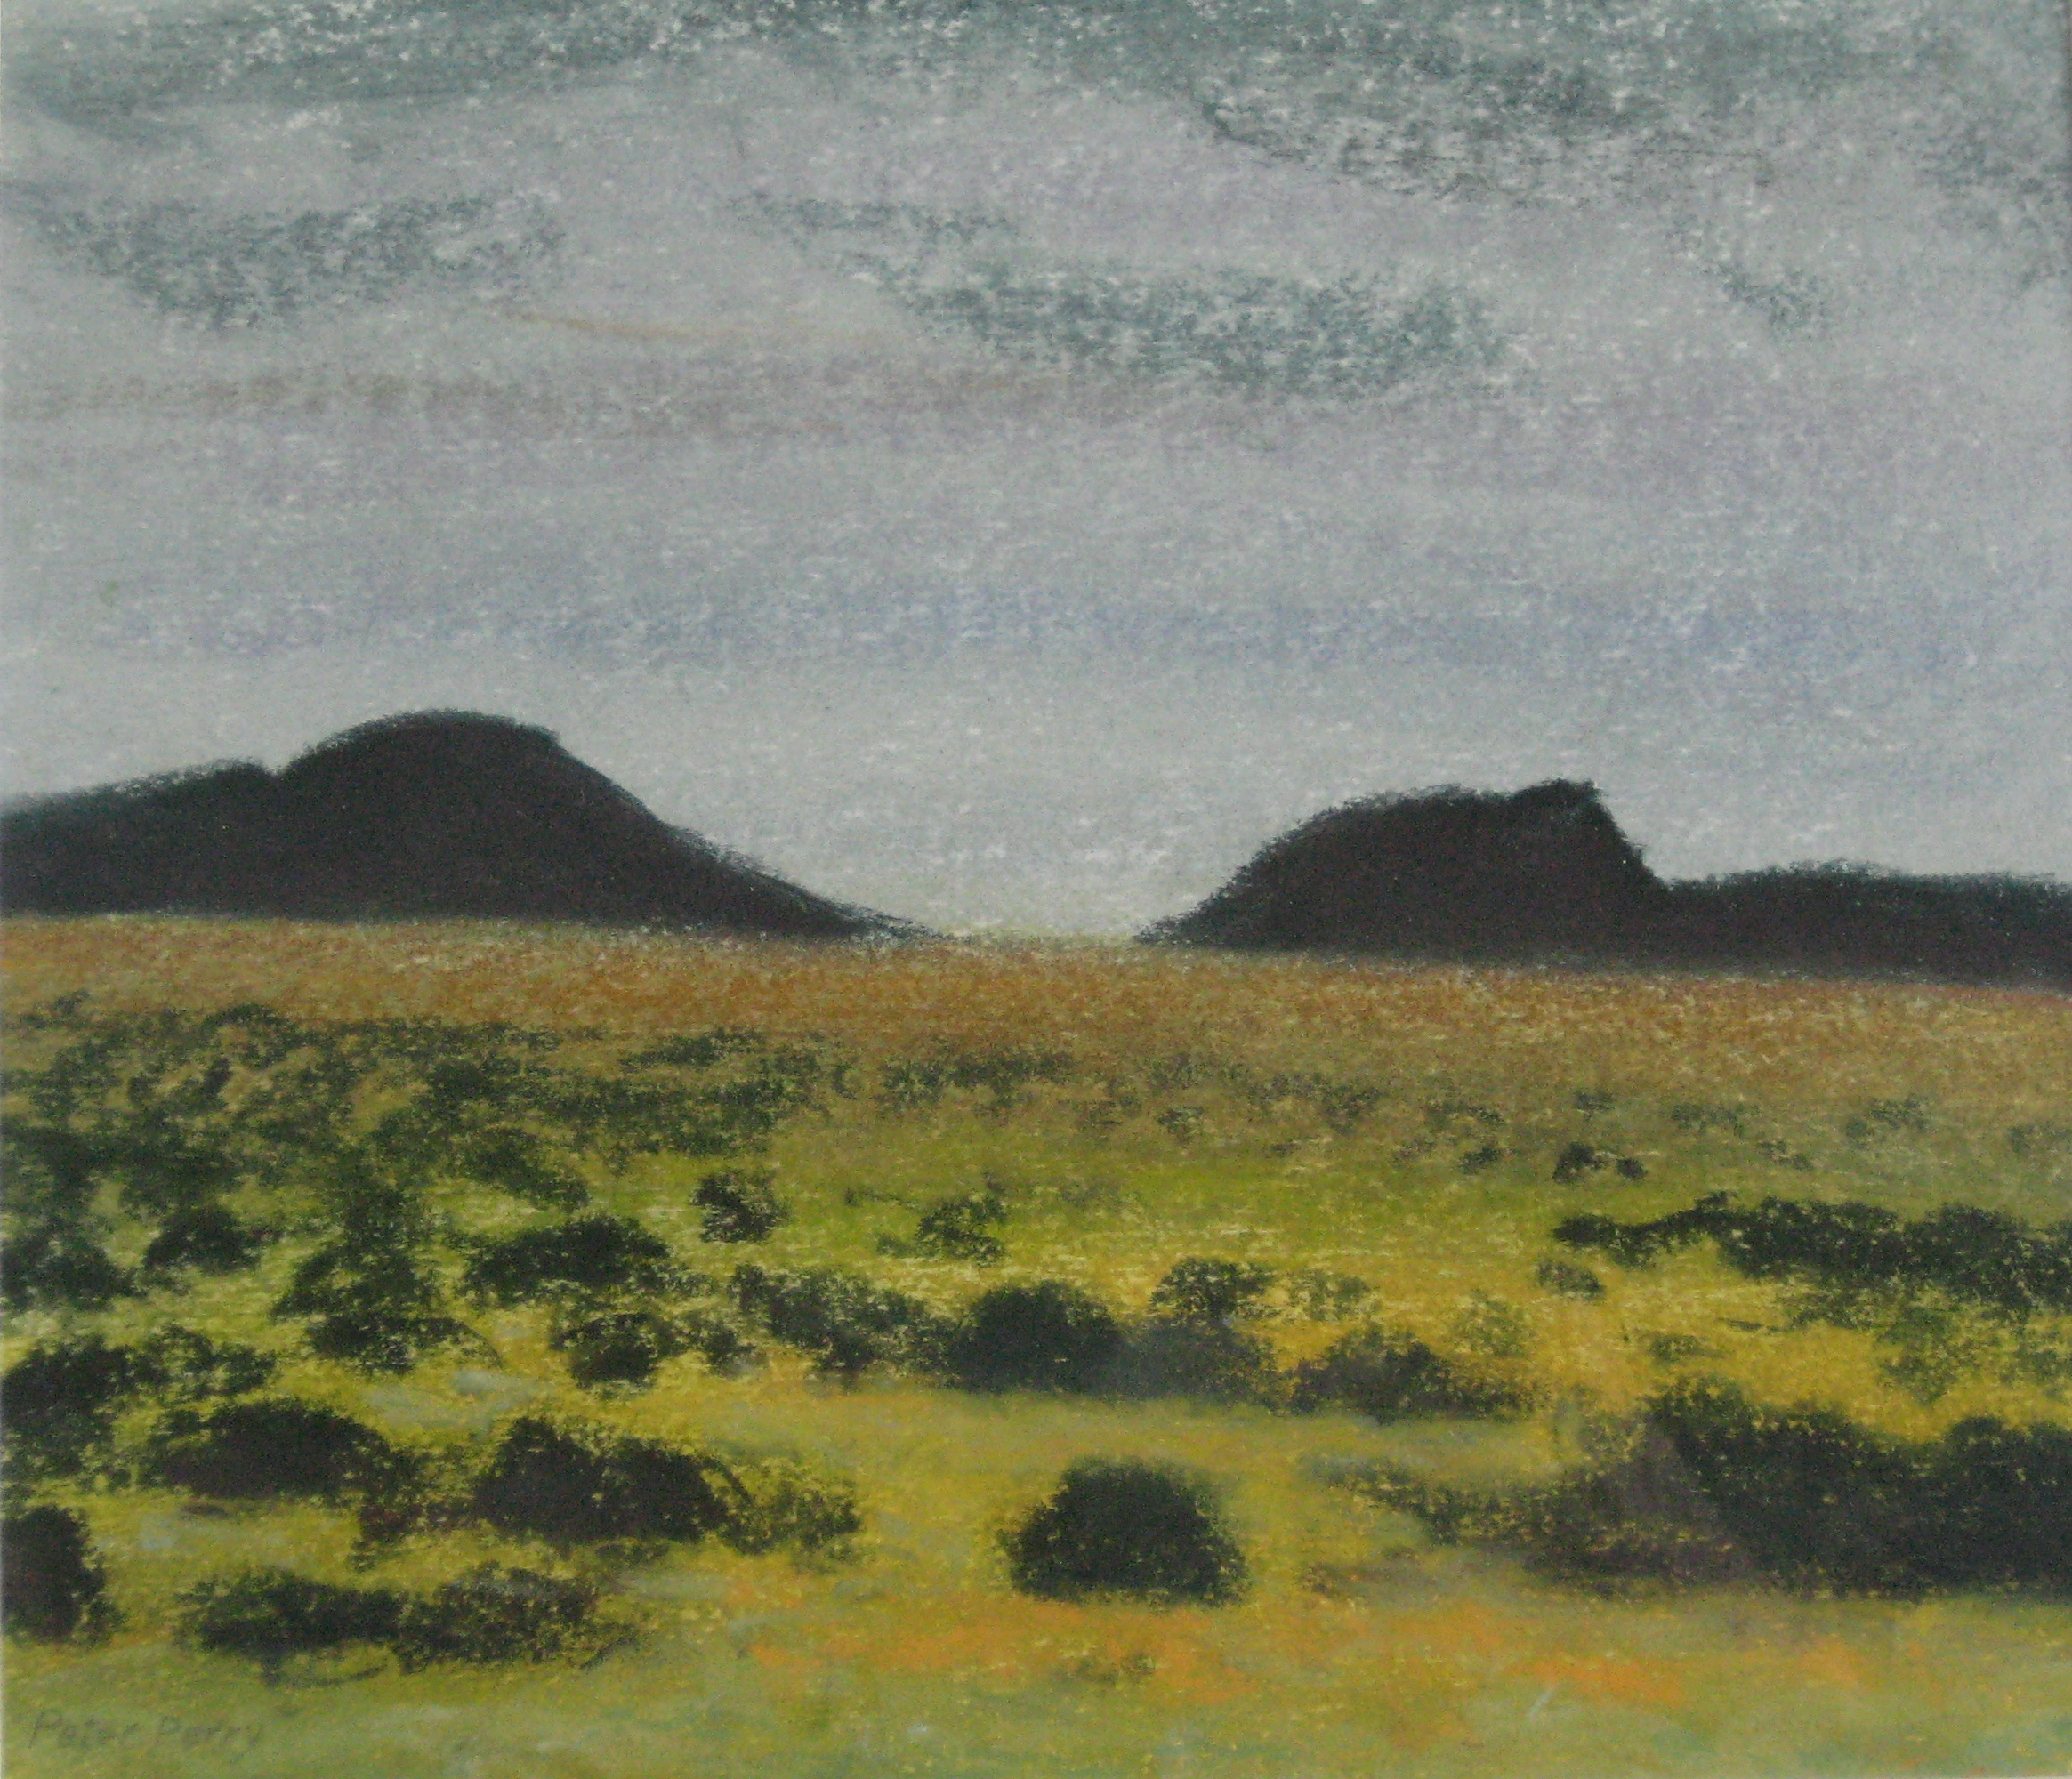 "WEST ICELAND VIII  8.5X7.5"" (22X19cm)   Pastel on card"